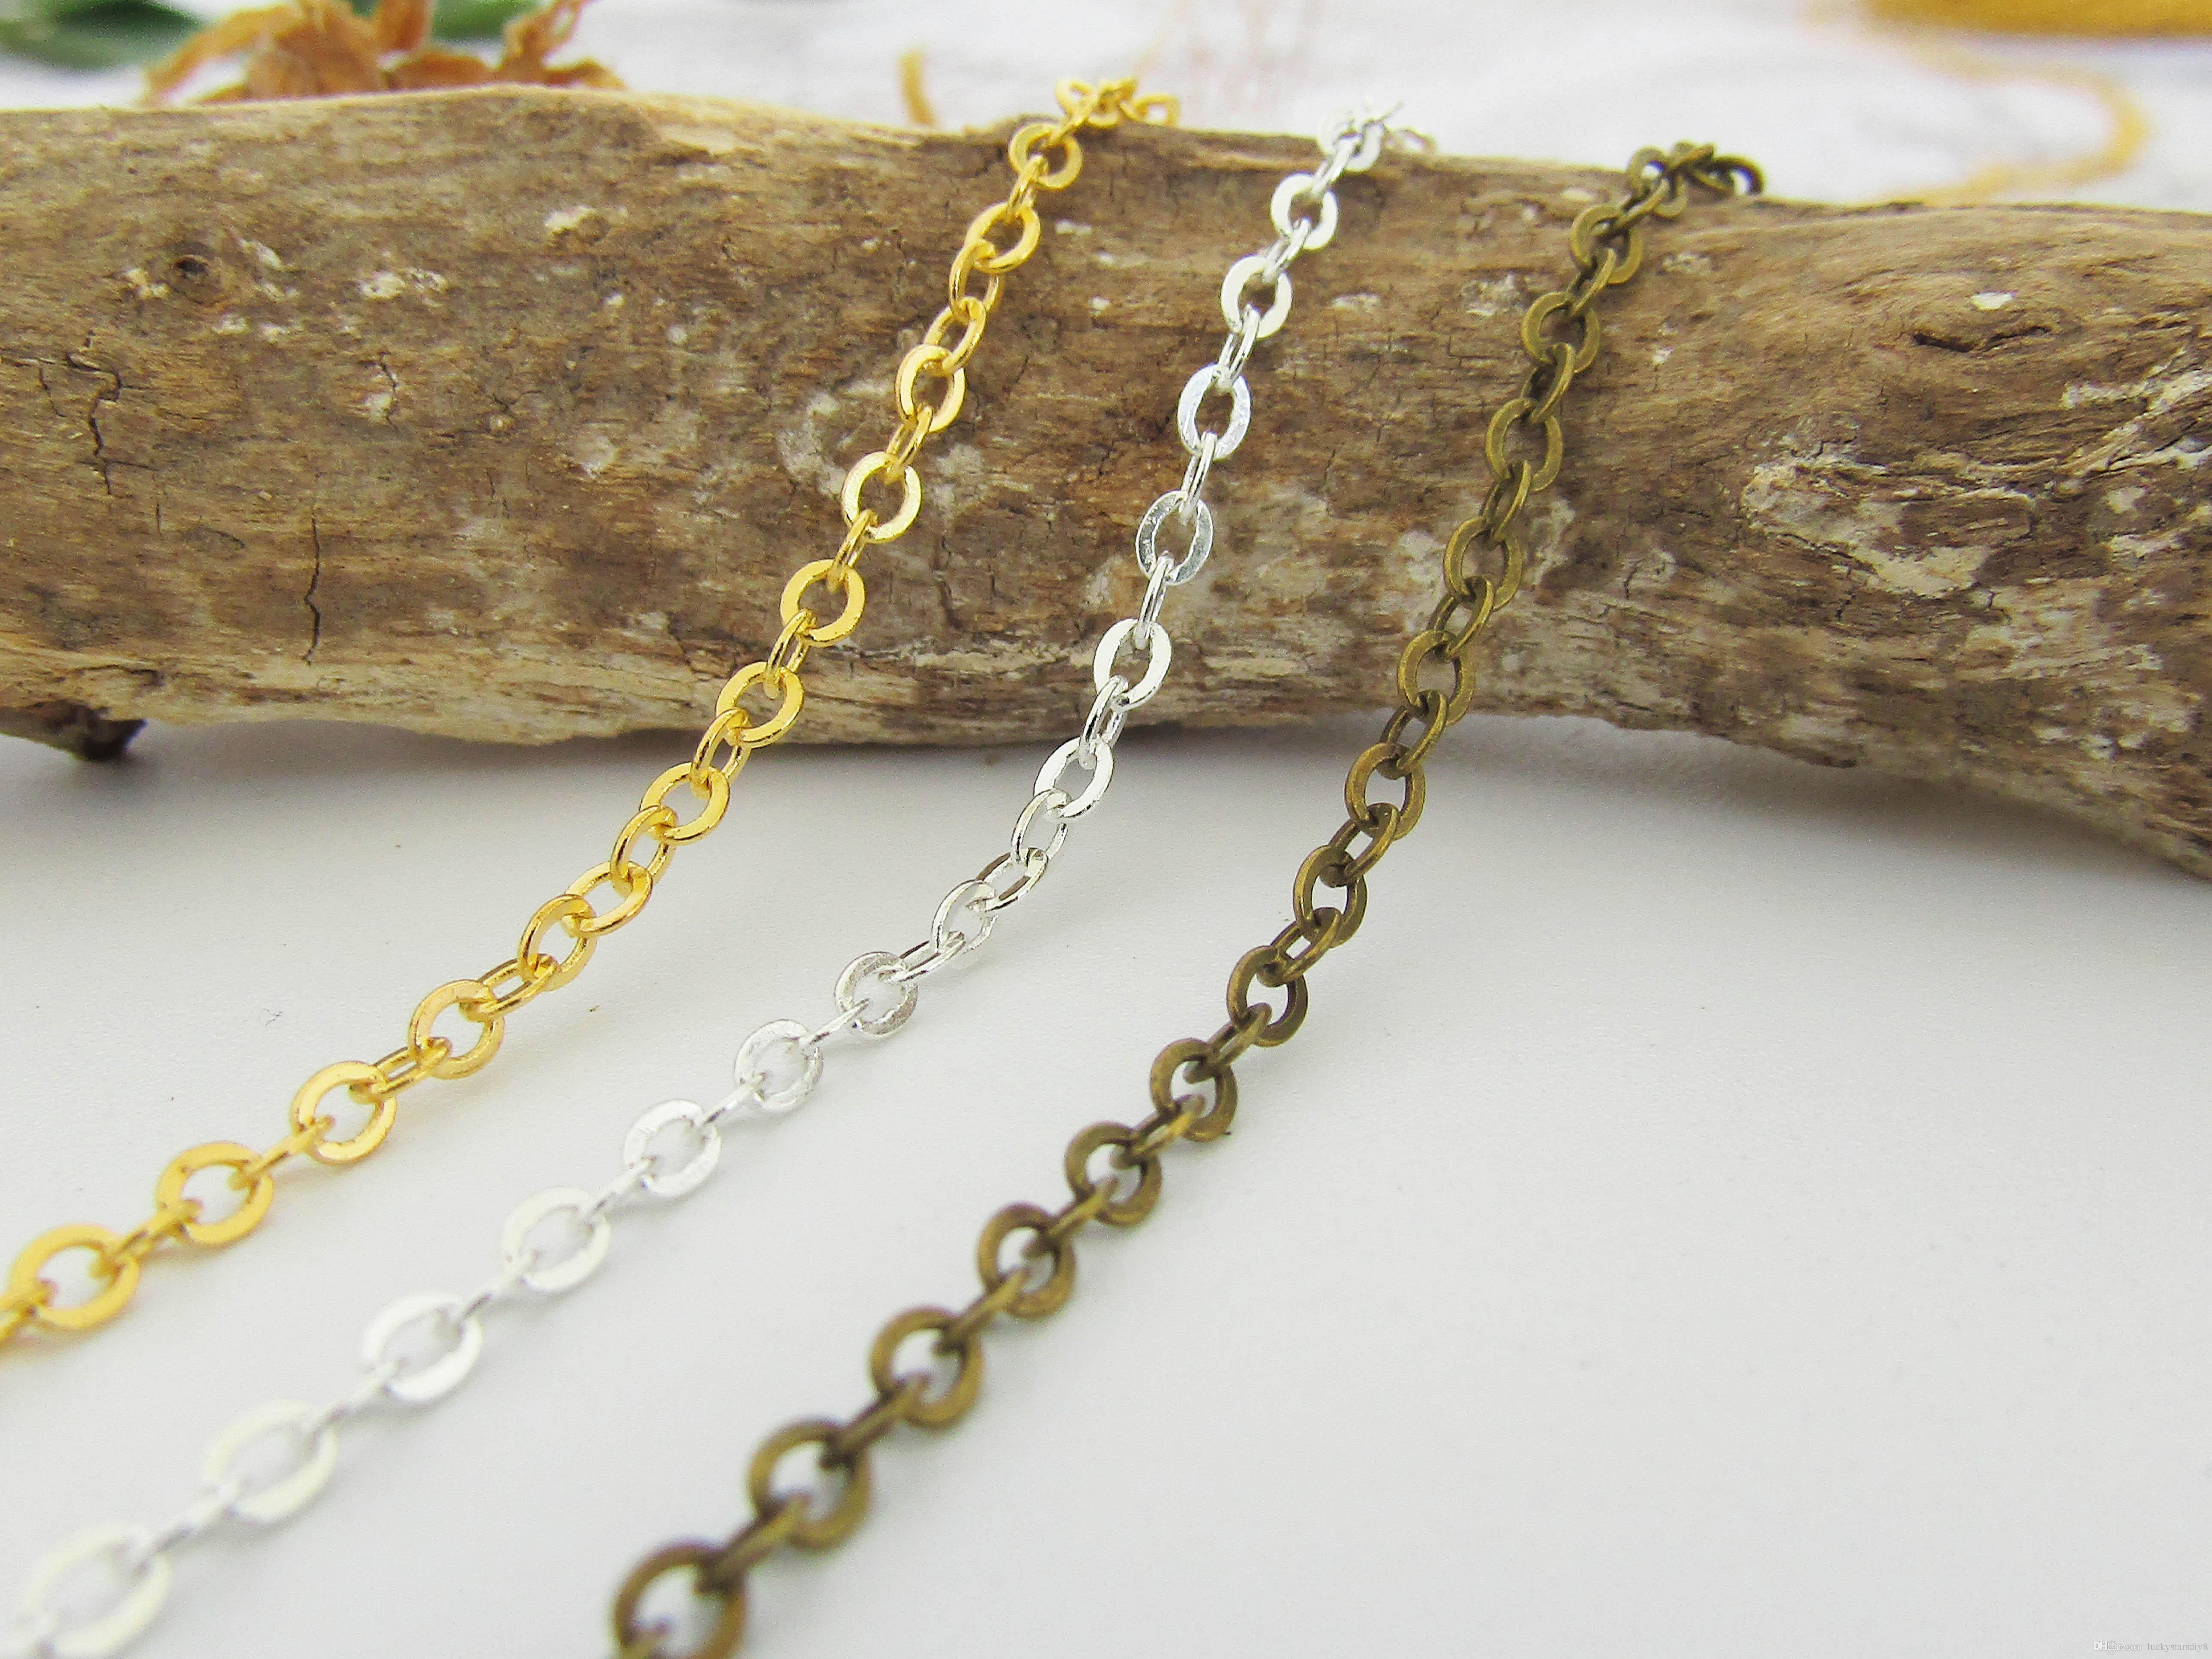 10 Metres Antique Gold Bronze Jewellery Chain 3 x 2mm NICKEL FREE WHOLESALE BULK